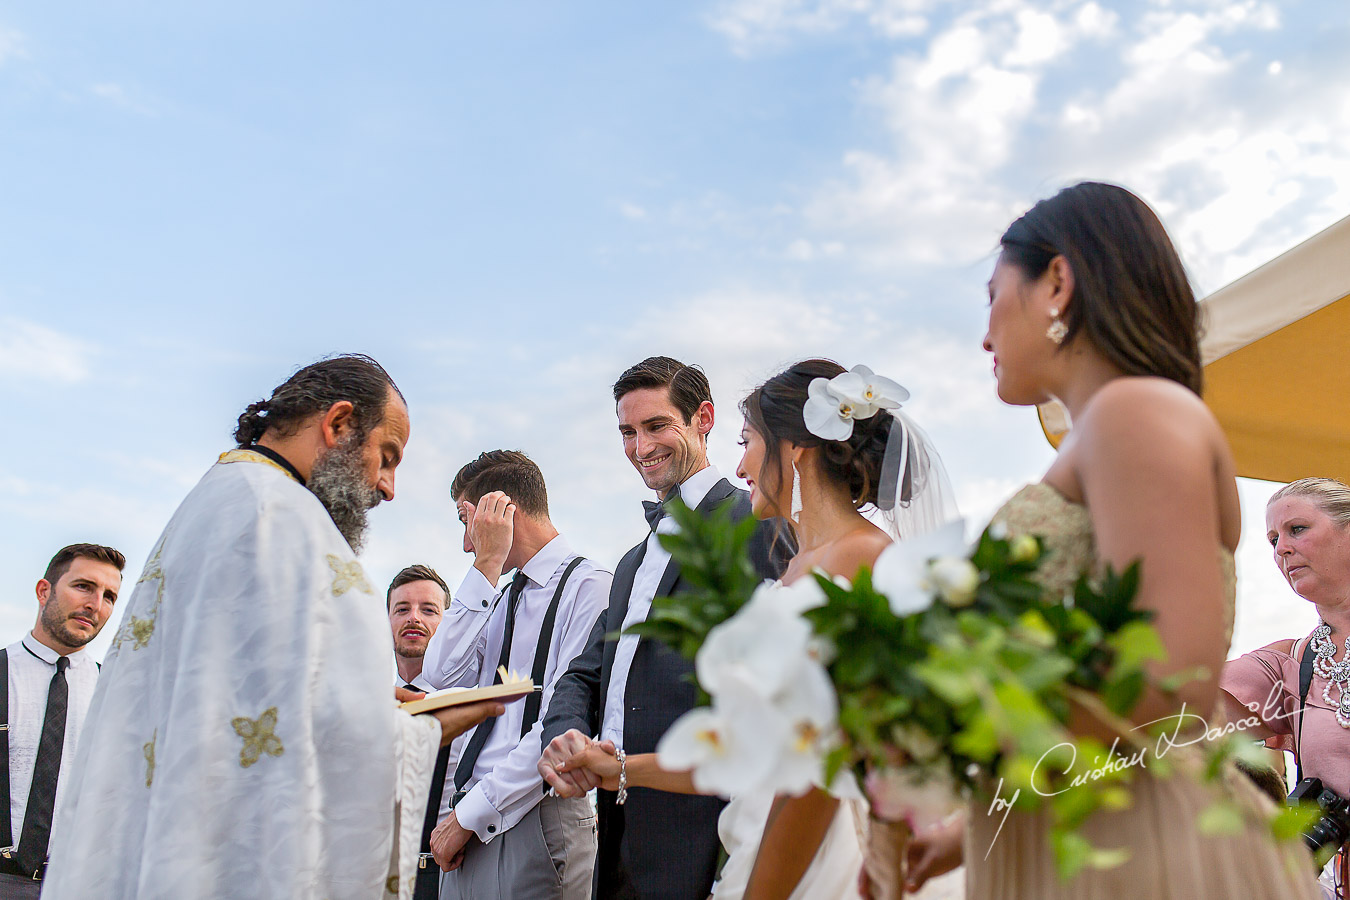 Wedding moments captured at a wedding in Ayia Napa, Cyprus by Cristian Dascalu.